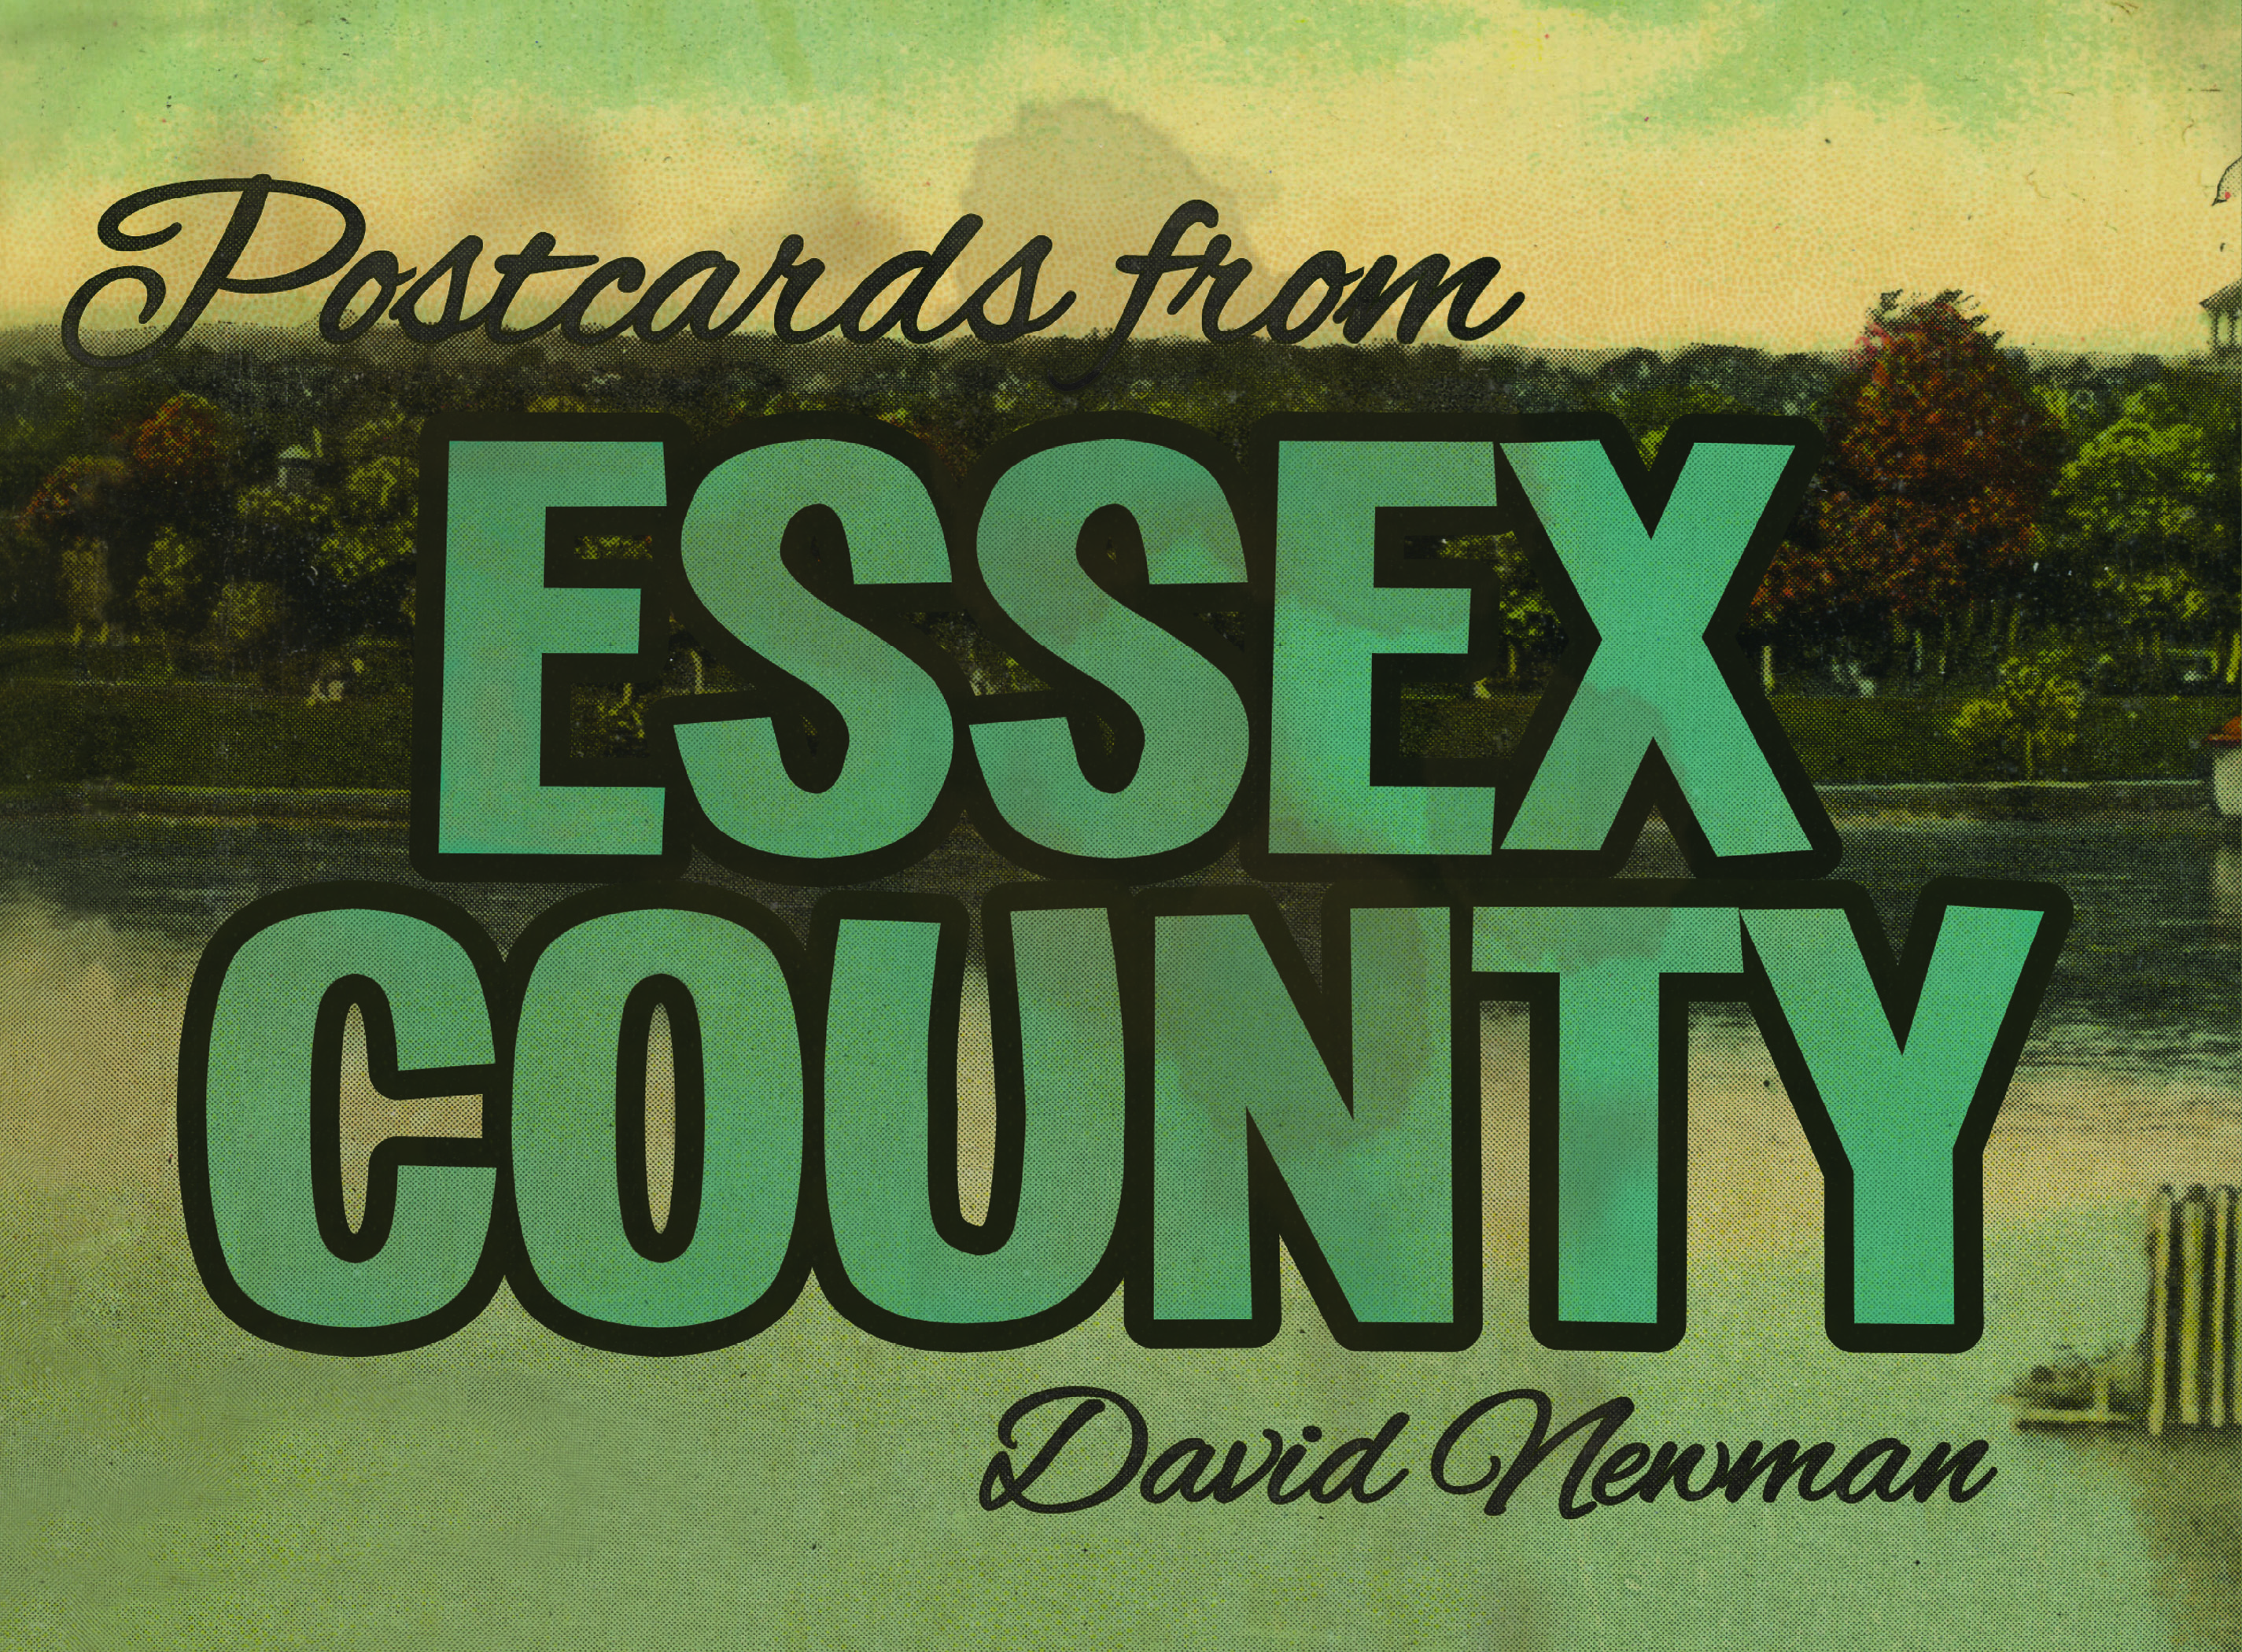 Postcards from Essex County